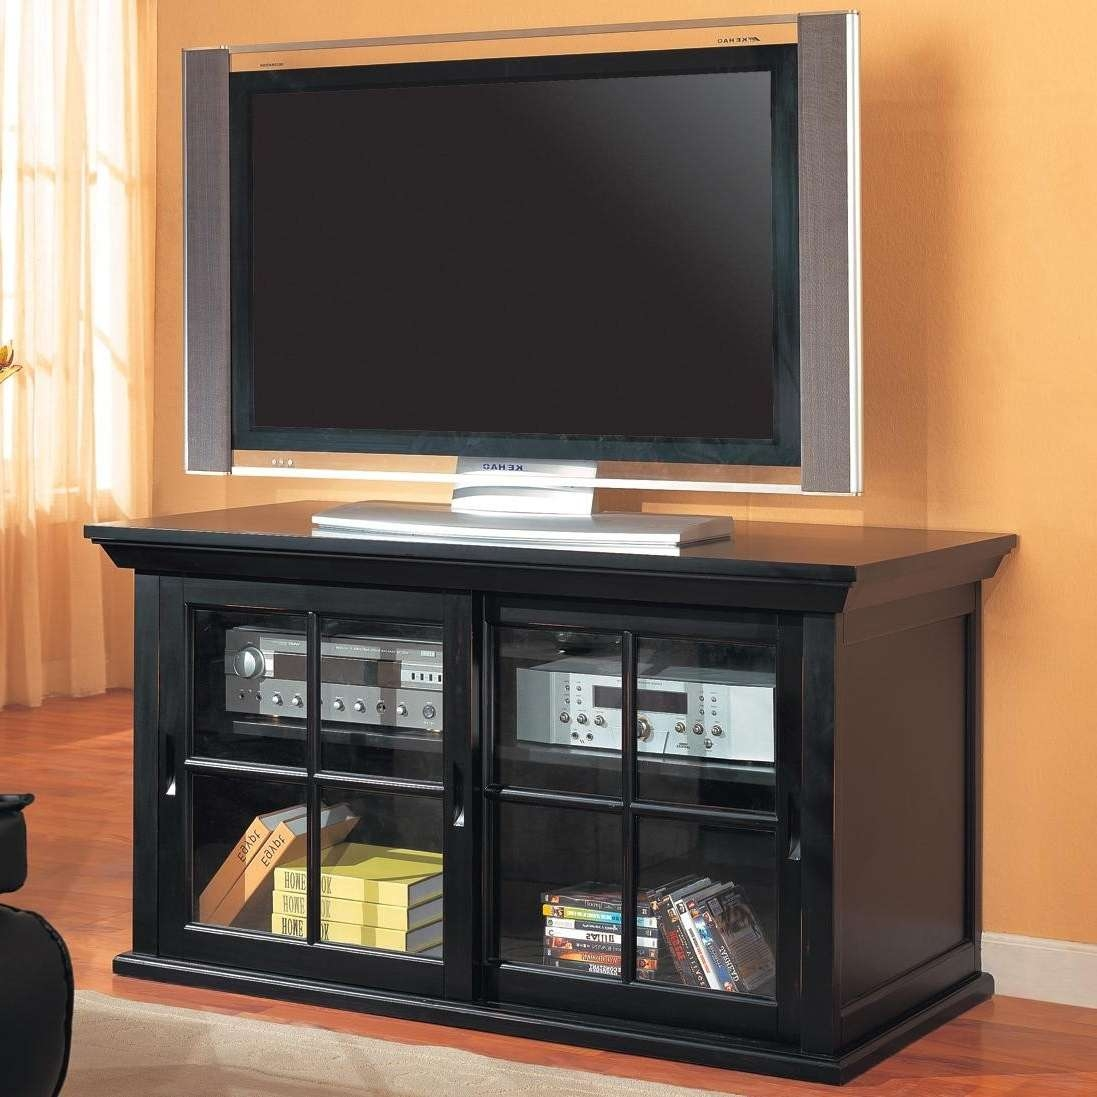 Small Tv Cabinets With Glass Doors • Cabinet Doors Throughout Glass Tv Cabinets With Doors (View 9 of 20)